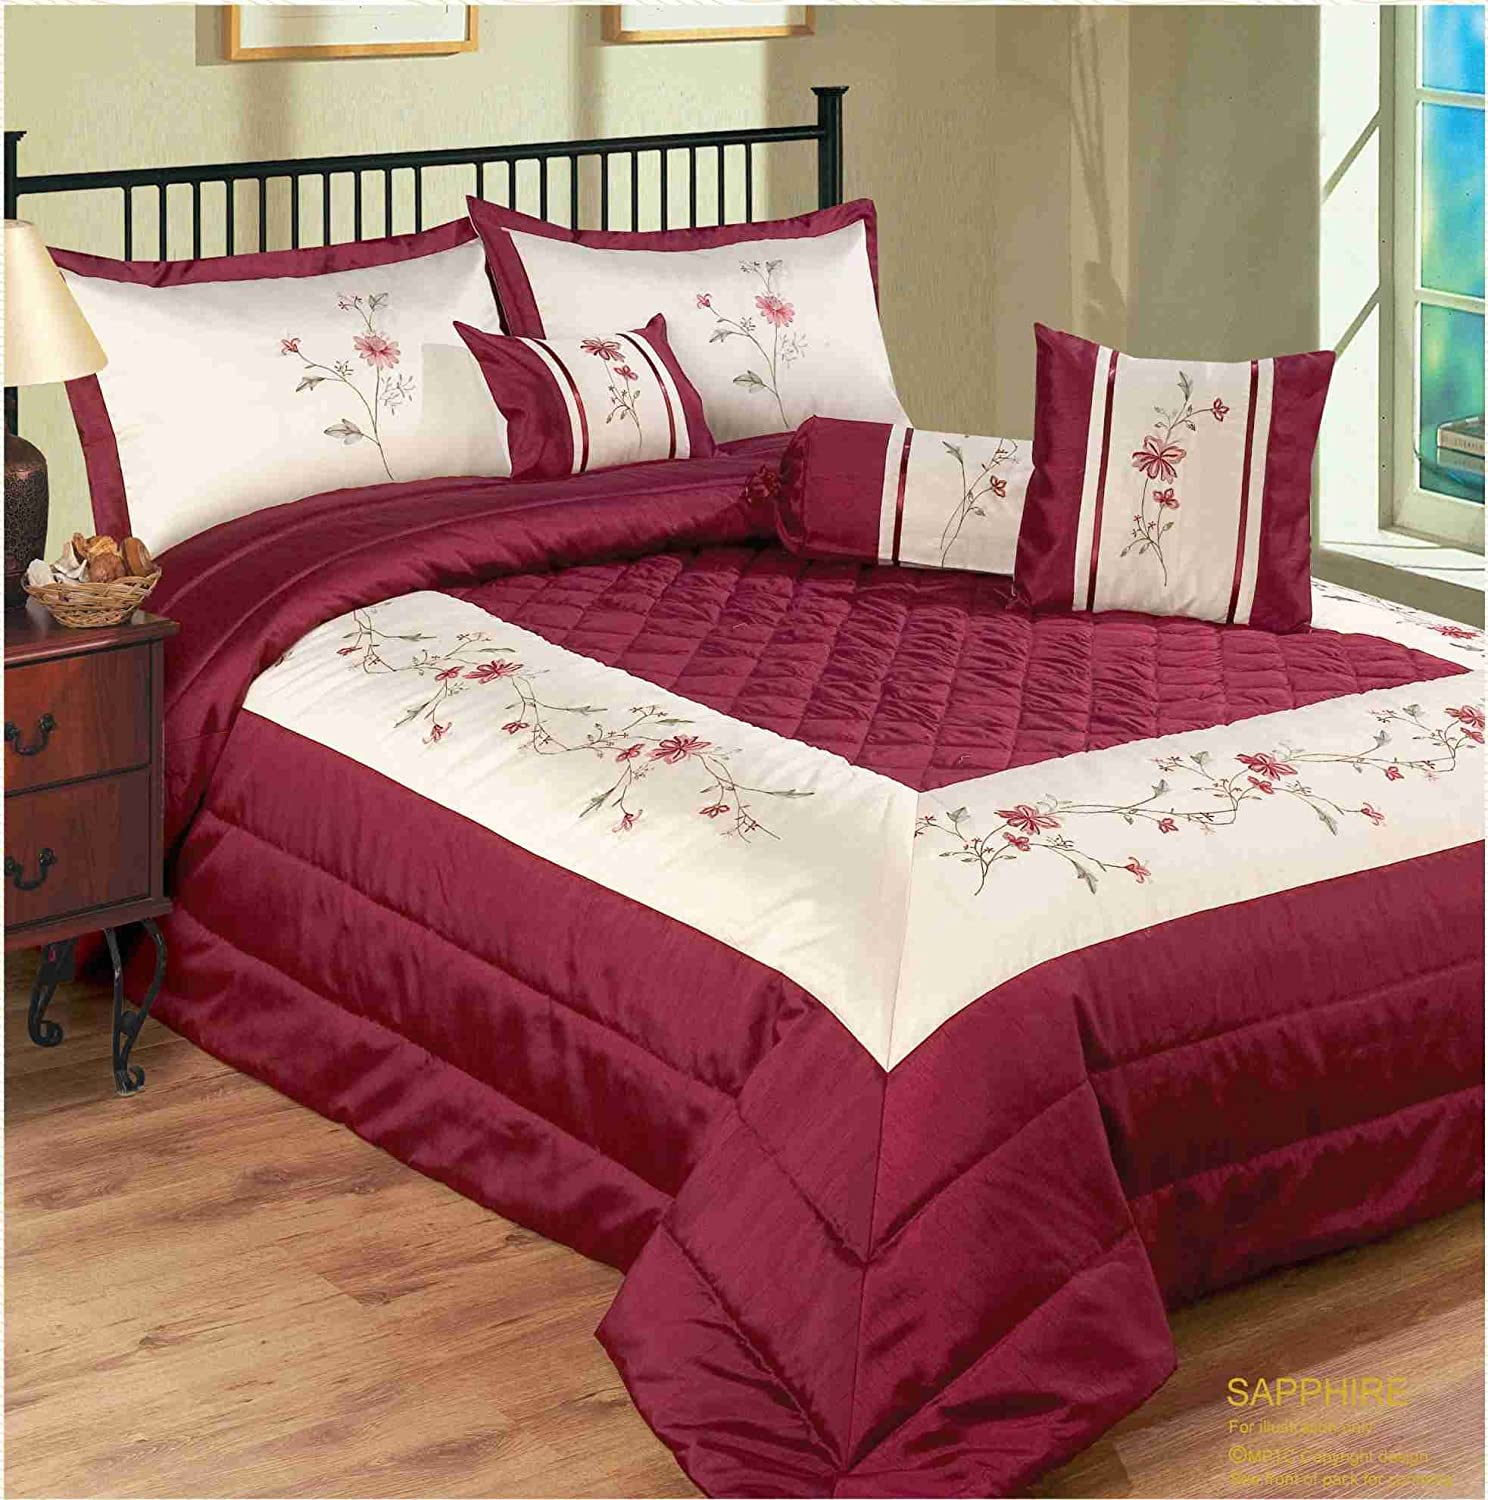 double bed burgundy sapphire floral bedspread quilted comforter throw modernembroided embellished amazoncouk kitchen  home. double bed burgundy sapphire floral bedspread quilted comforter